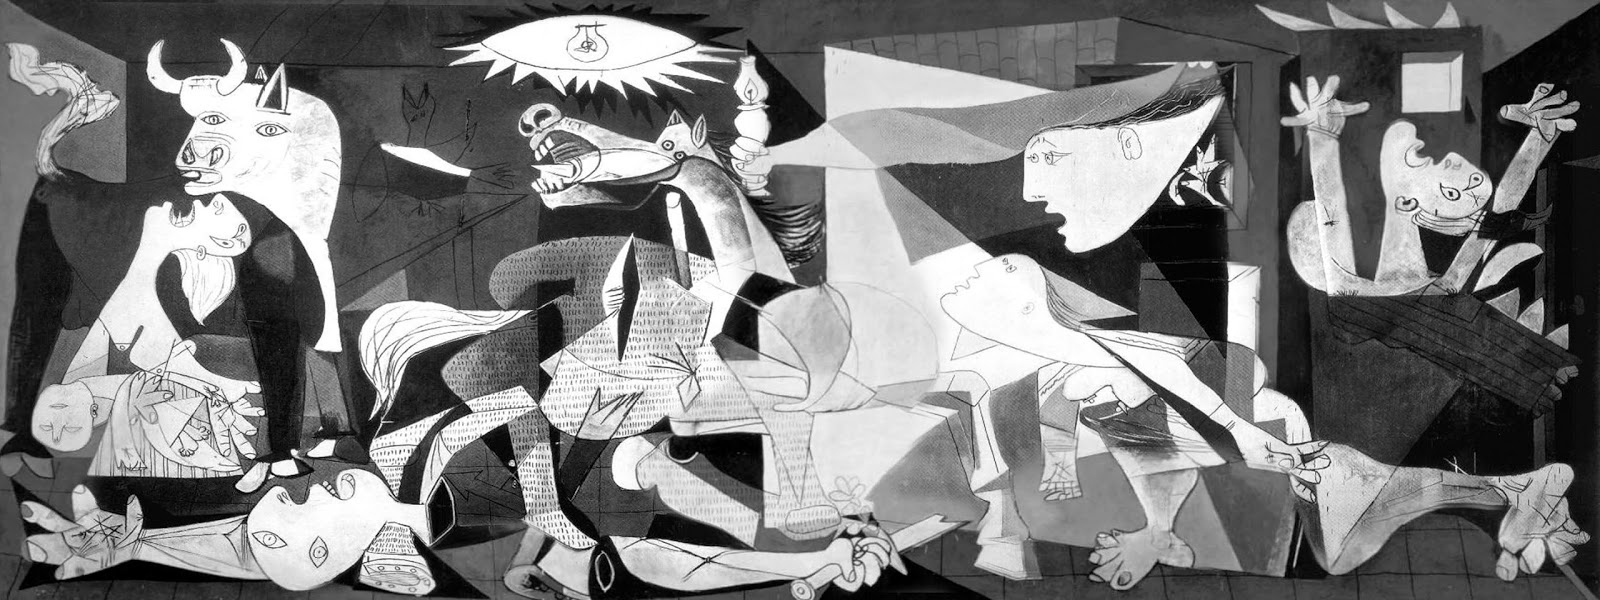 Wikipedia entry on Picasso's Guernica